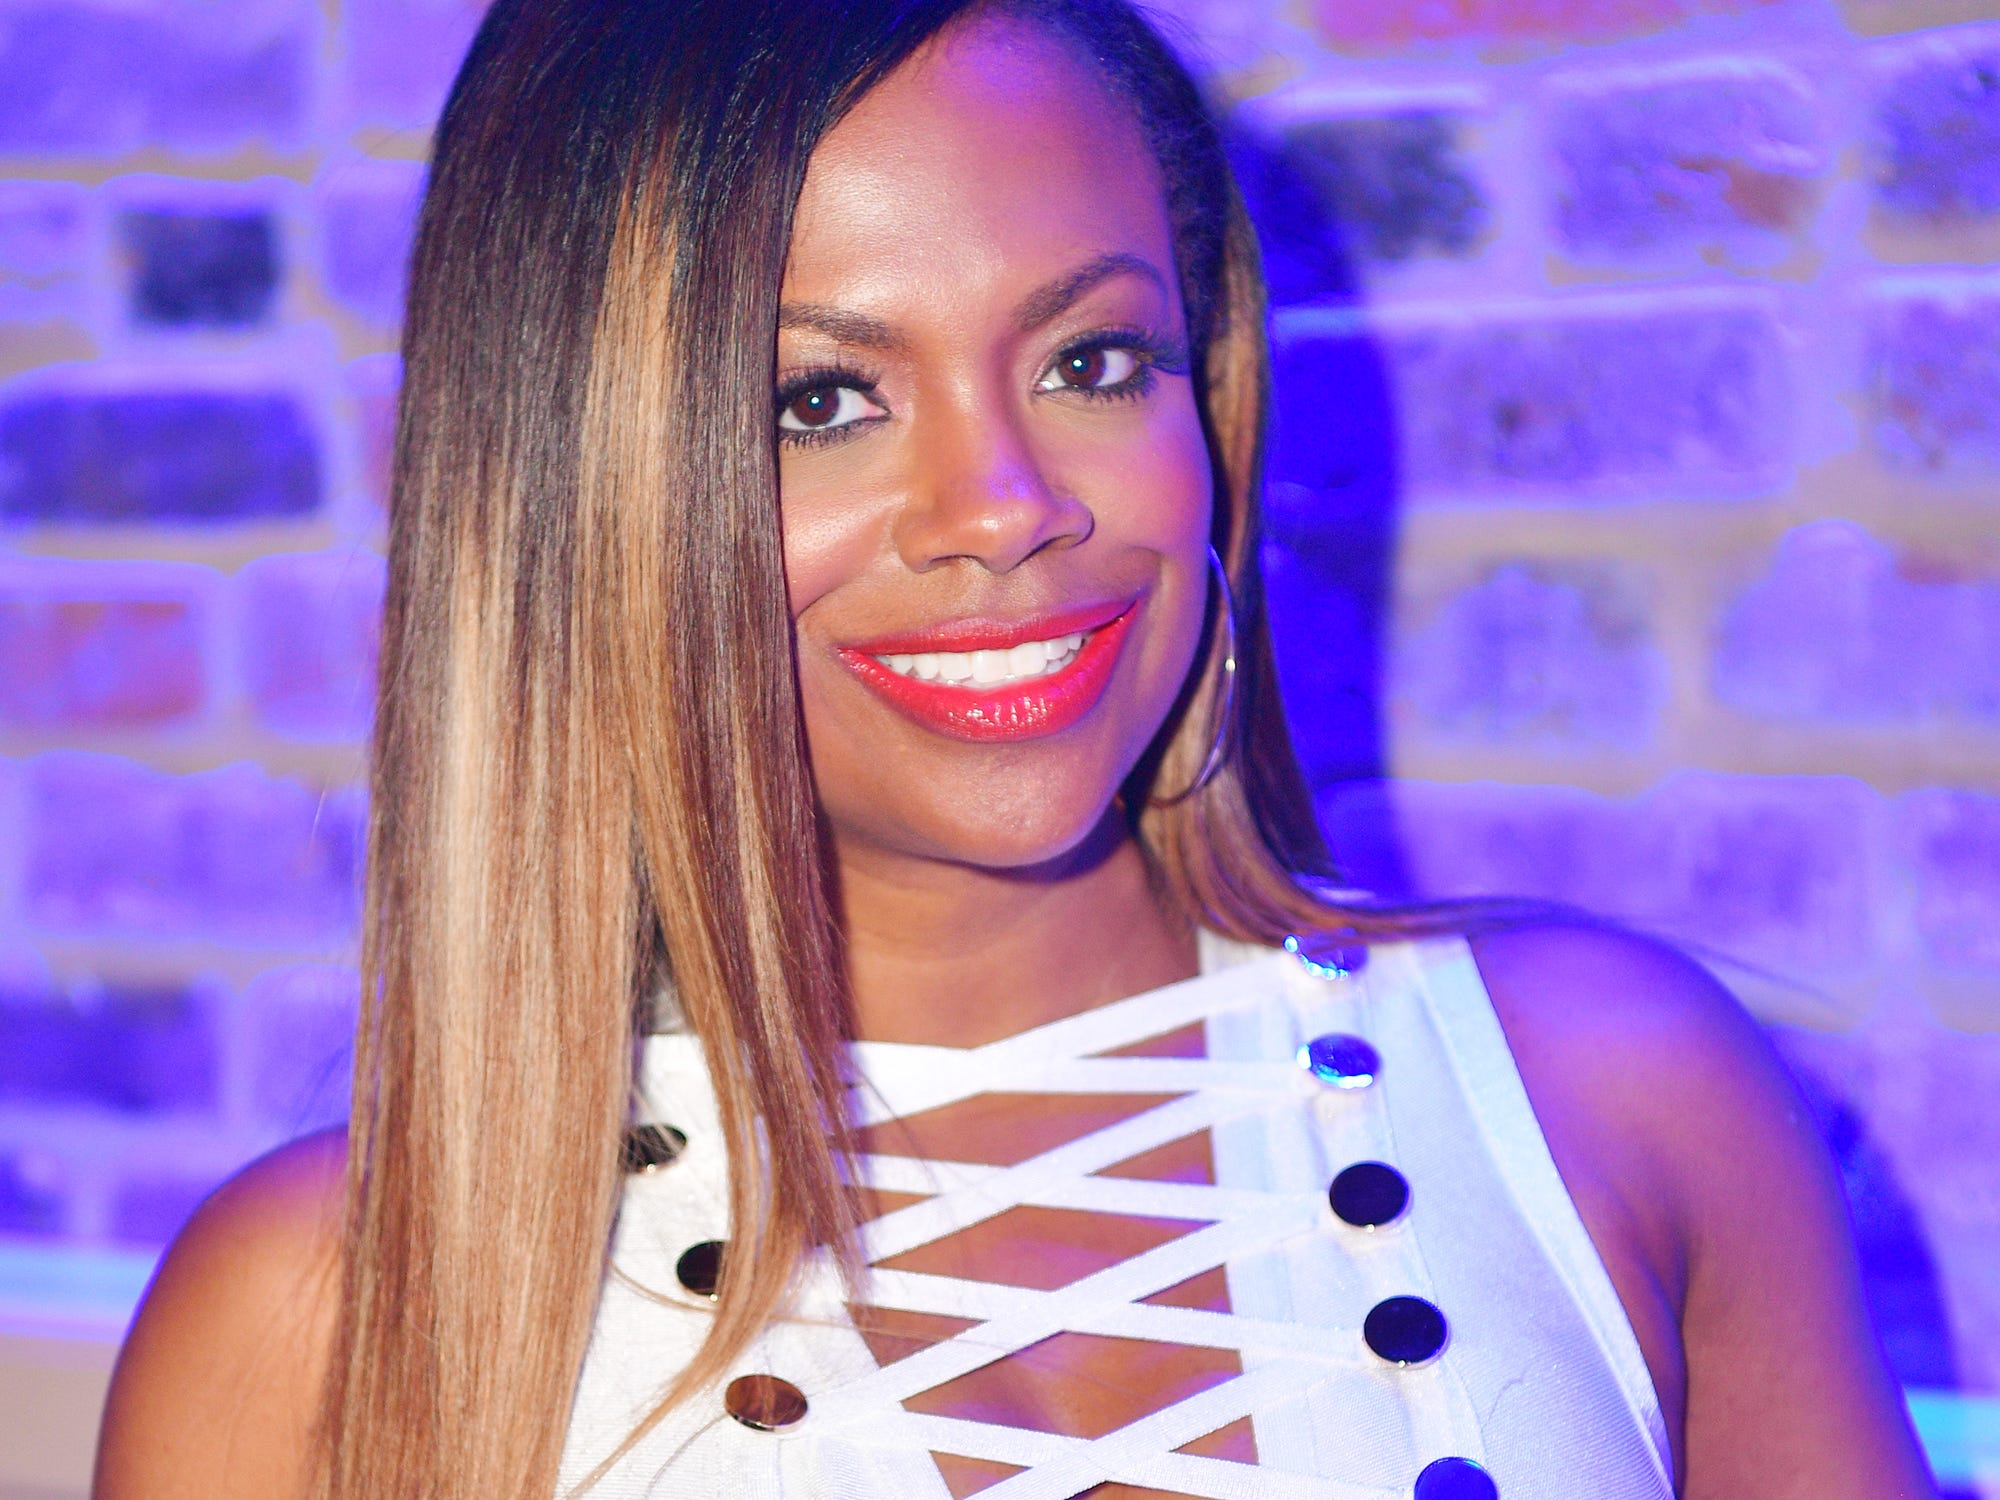 Kandi Burruss Has Been On A Hair Dye Box For 20 Years